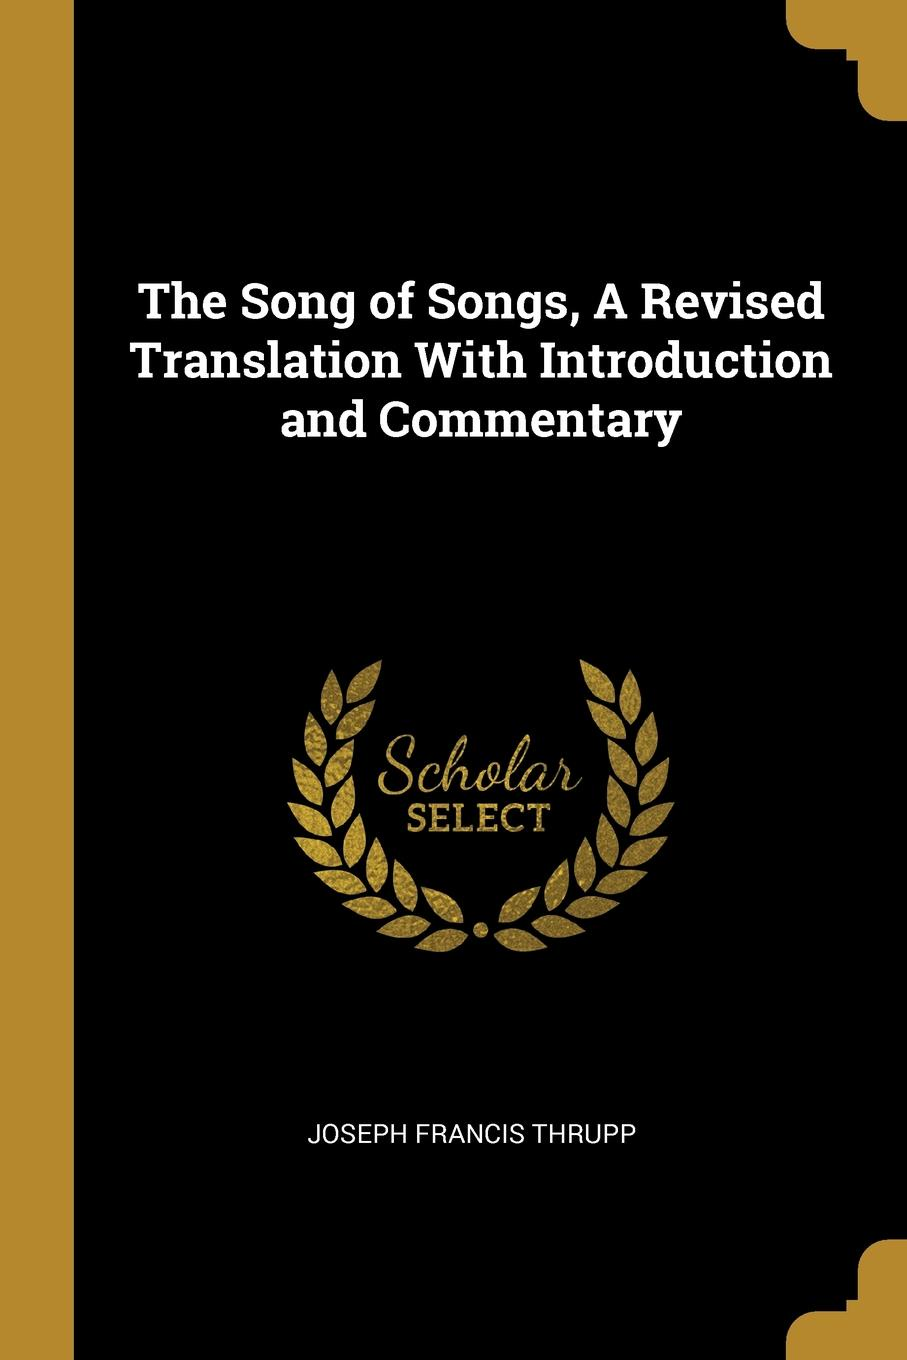 Joseph Francis Thrupp. The Song of Songs, A Revised Translation With Introduction and Commentary